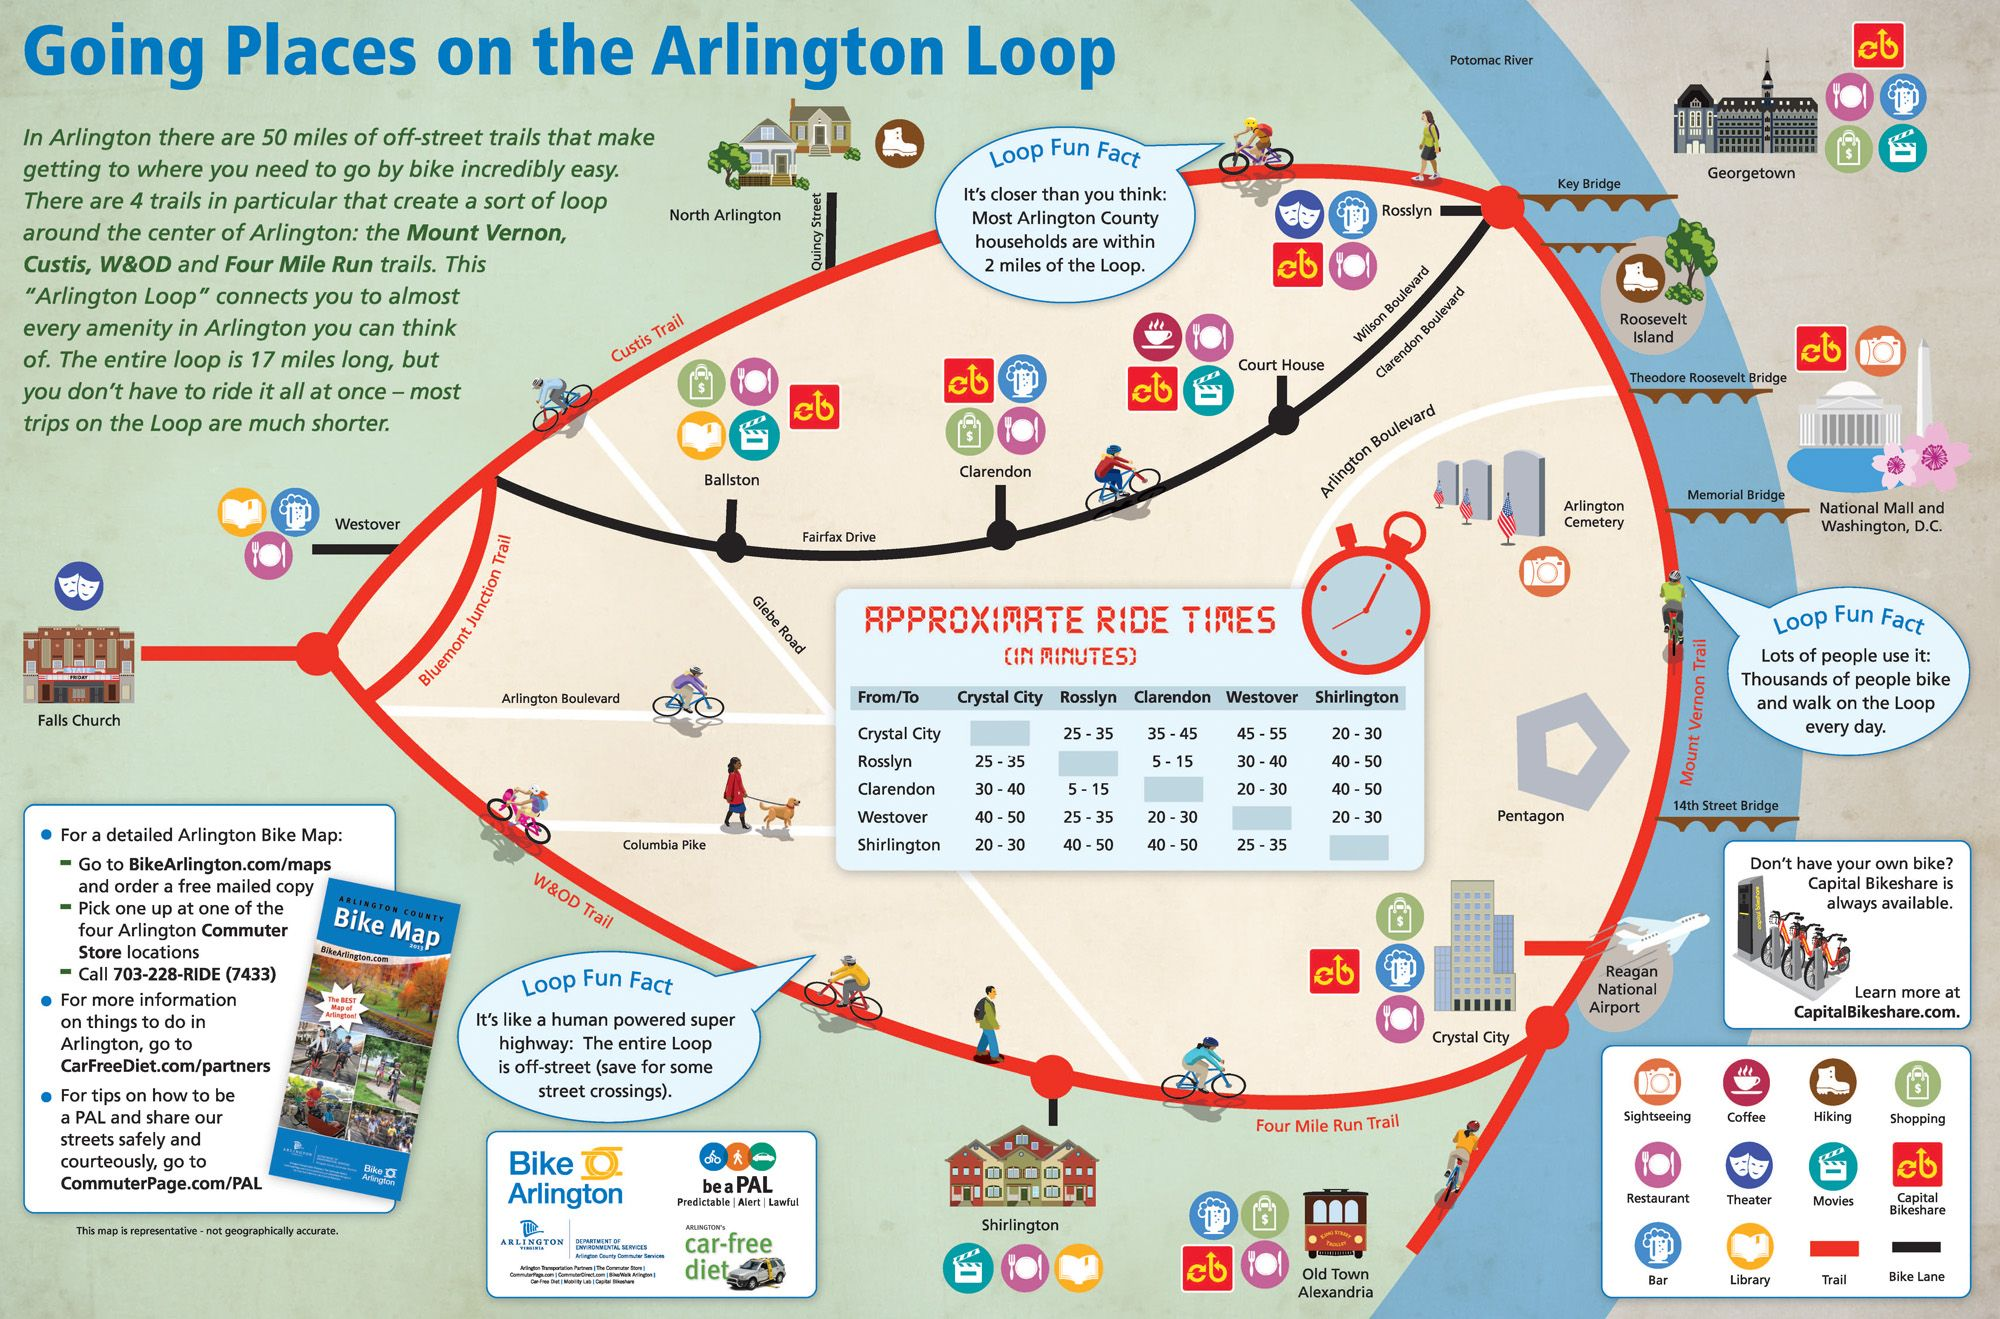 The Arlington VA Loop one of my favorite quick workouts